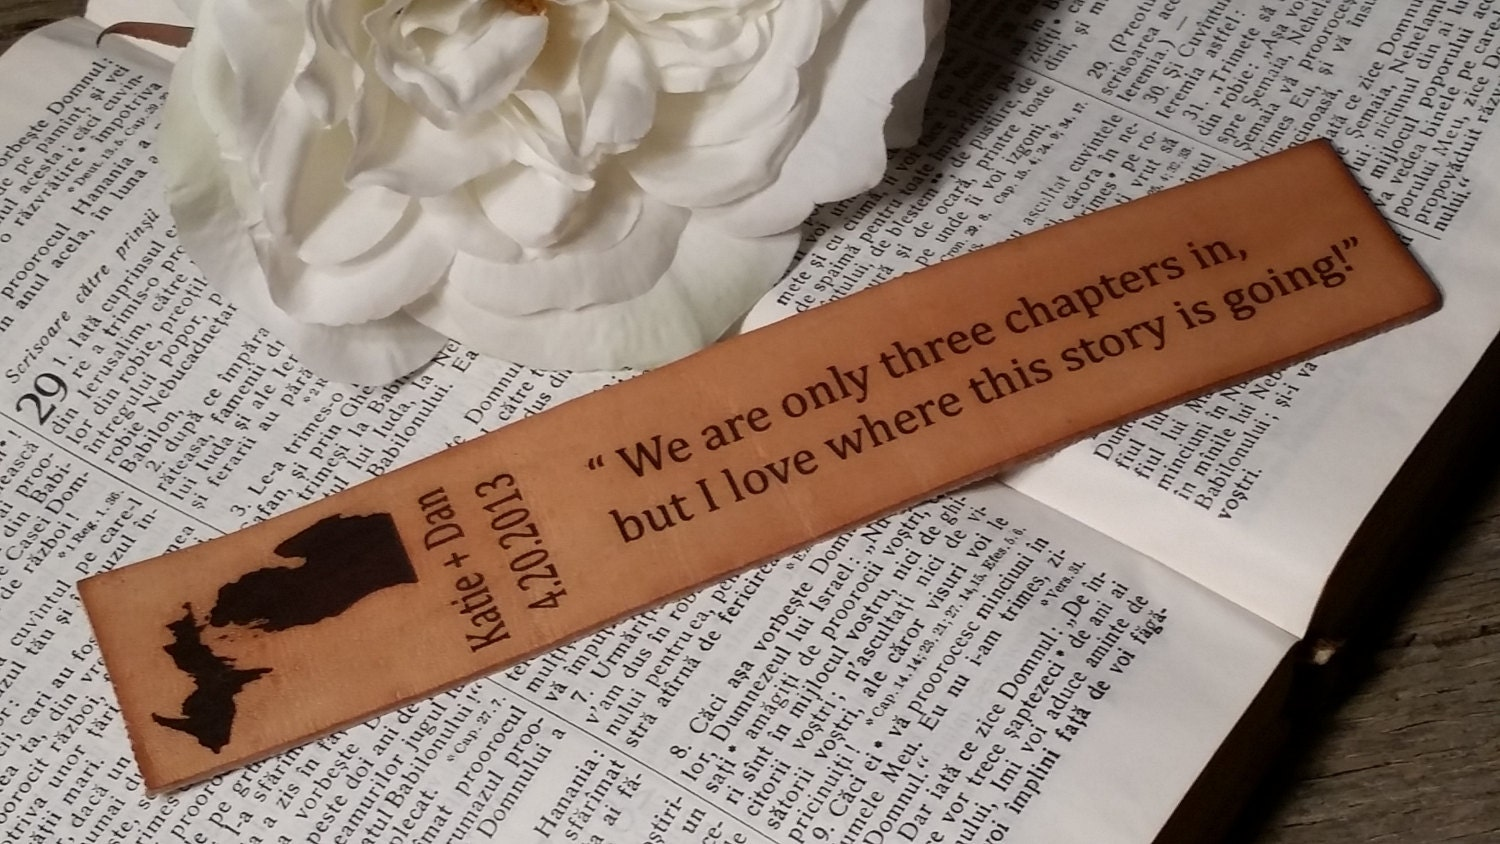 Gifts For 3 Year Wedding Anniversary: 3rd Wedding Anniversary Custom Engraved Leather Bookmark